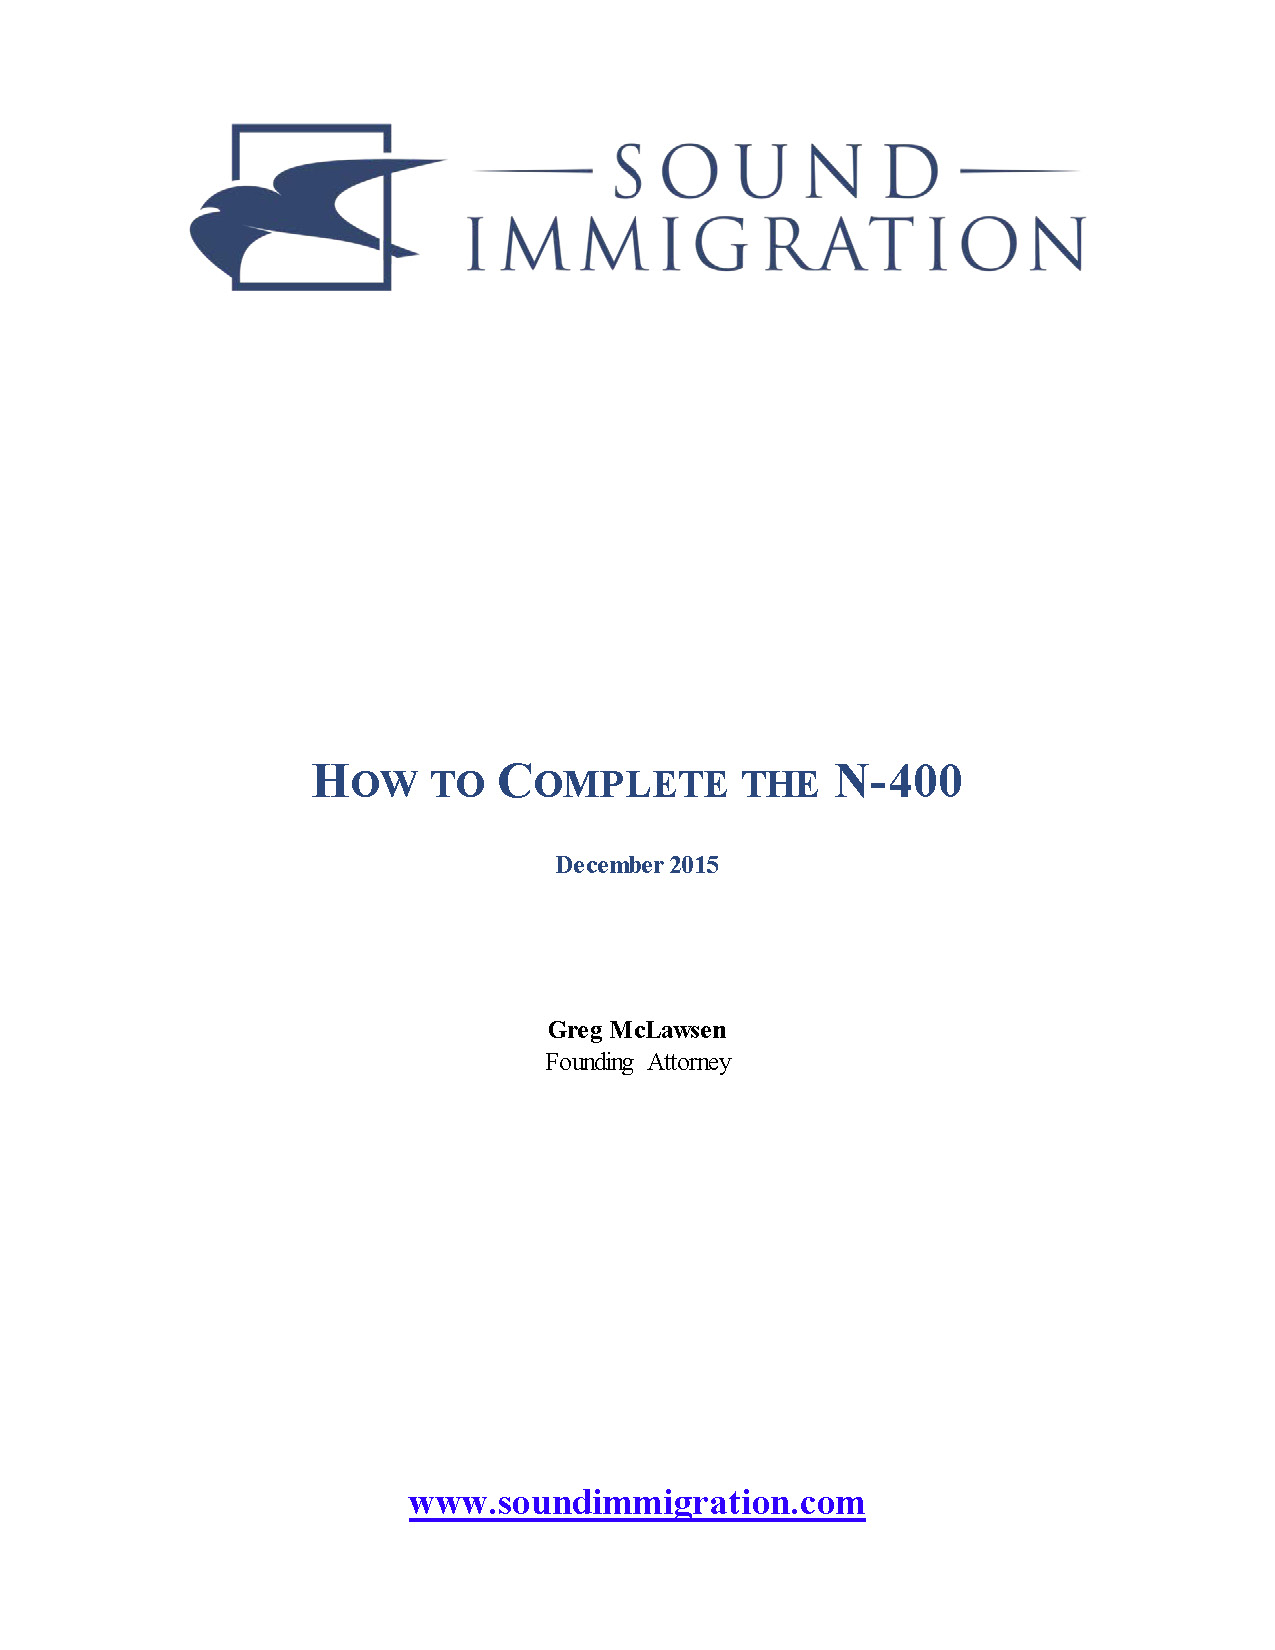 How To Complete The Form N-400